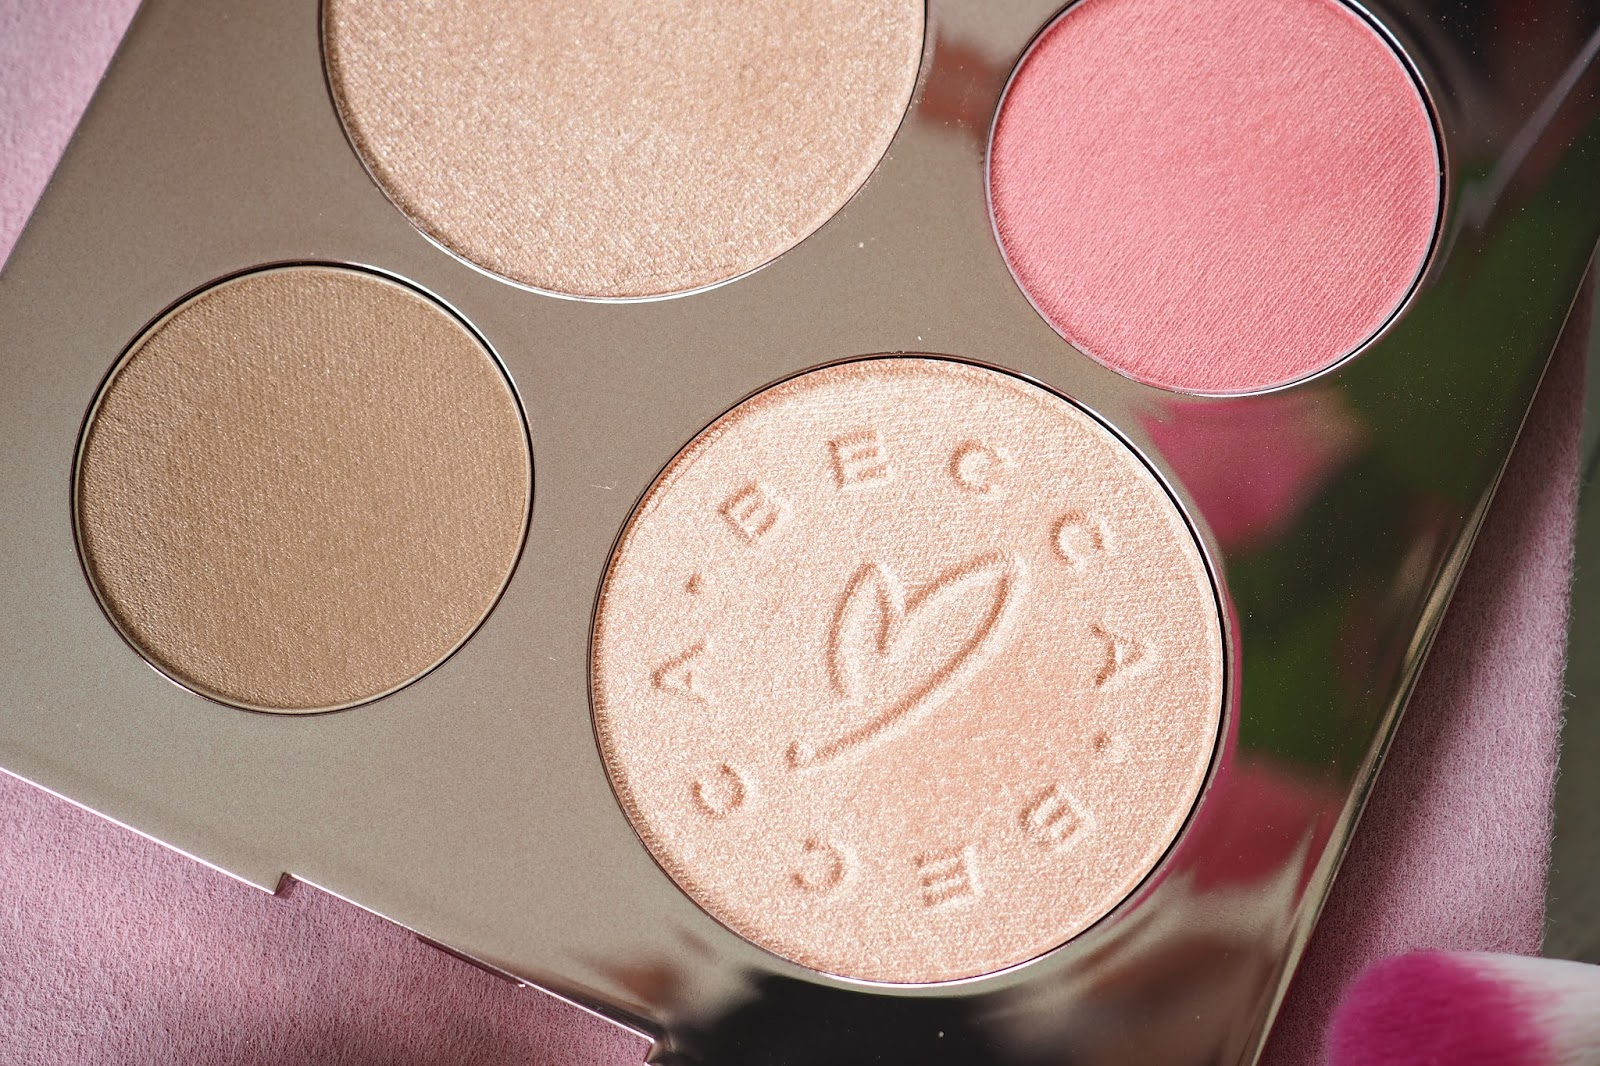 BECCA X Chrissy Teigen Glow Face Palette close up of shades